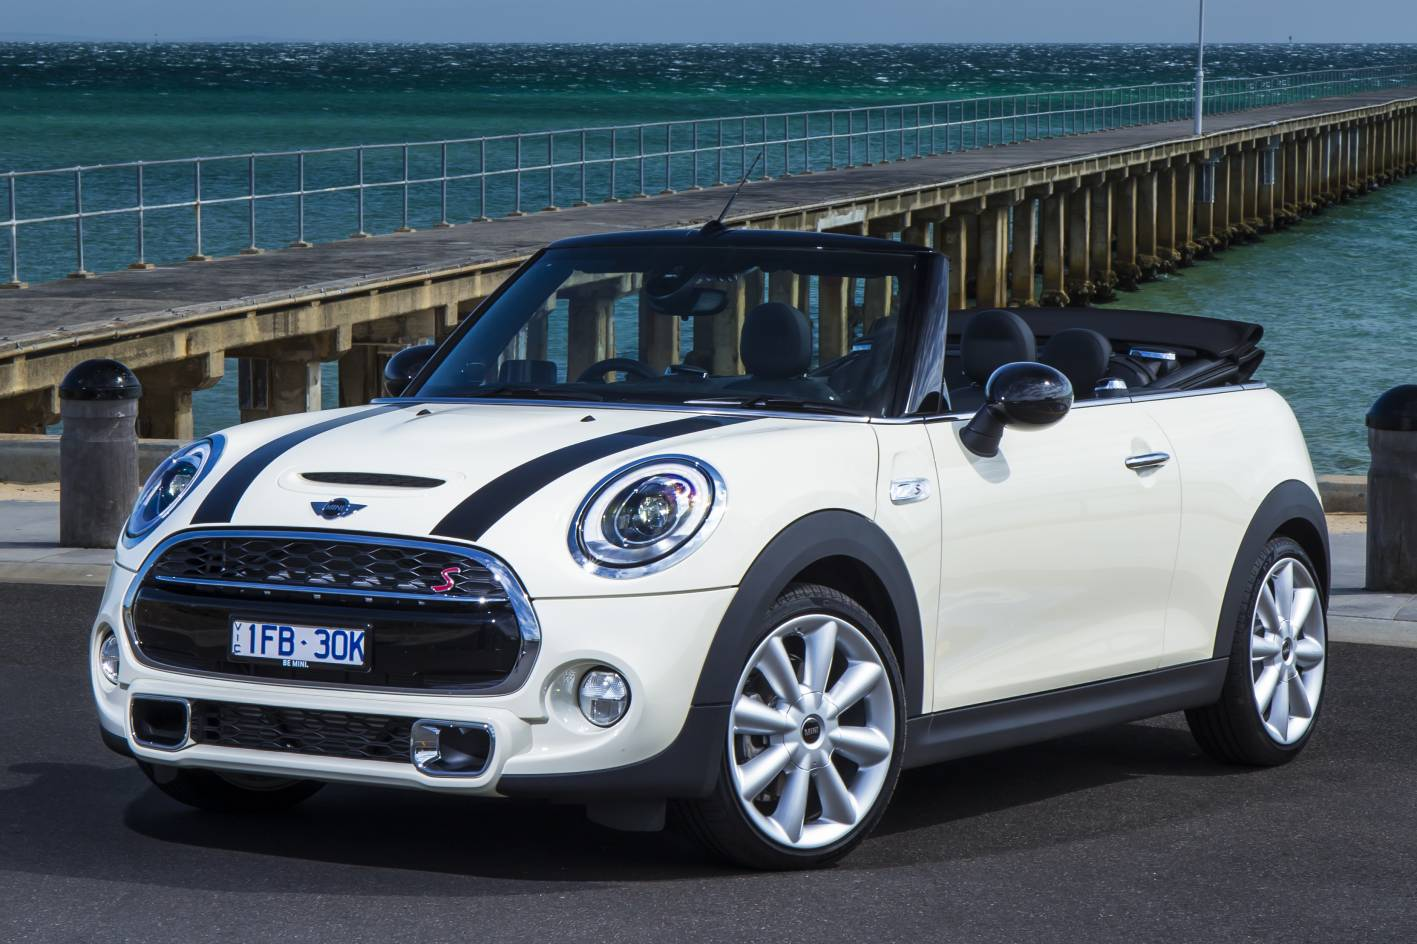 2016 mini cooper s convertible review practical motoring. Black Bedroom Furniture Sets. Home Design Ideas